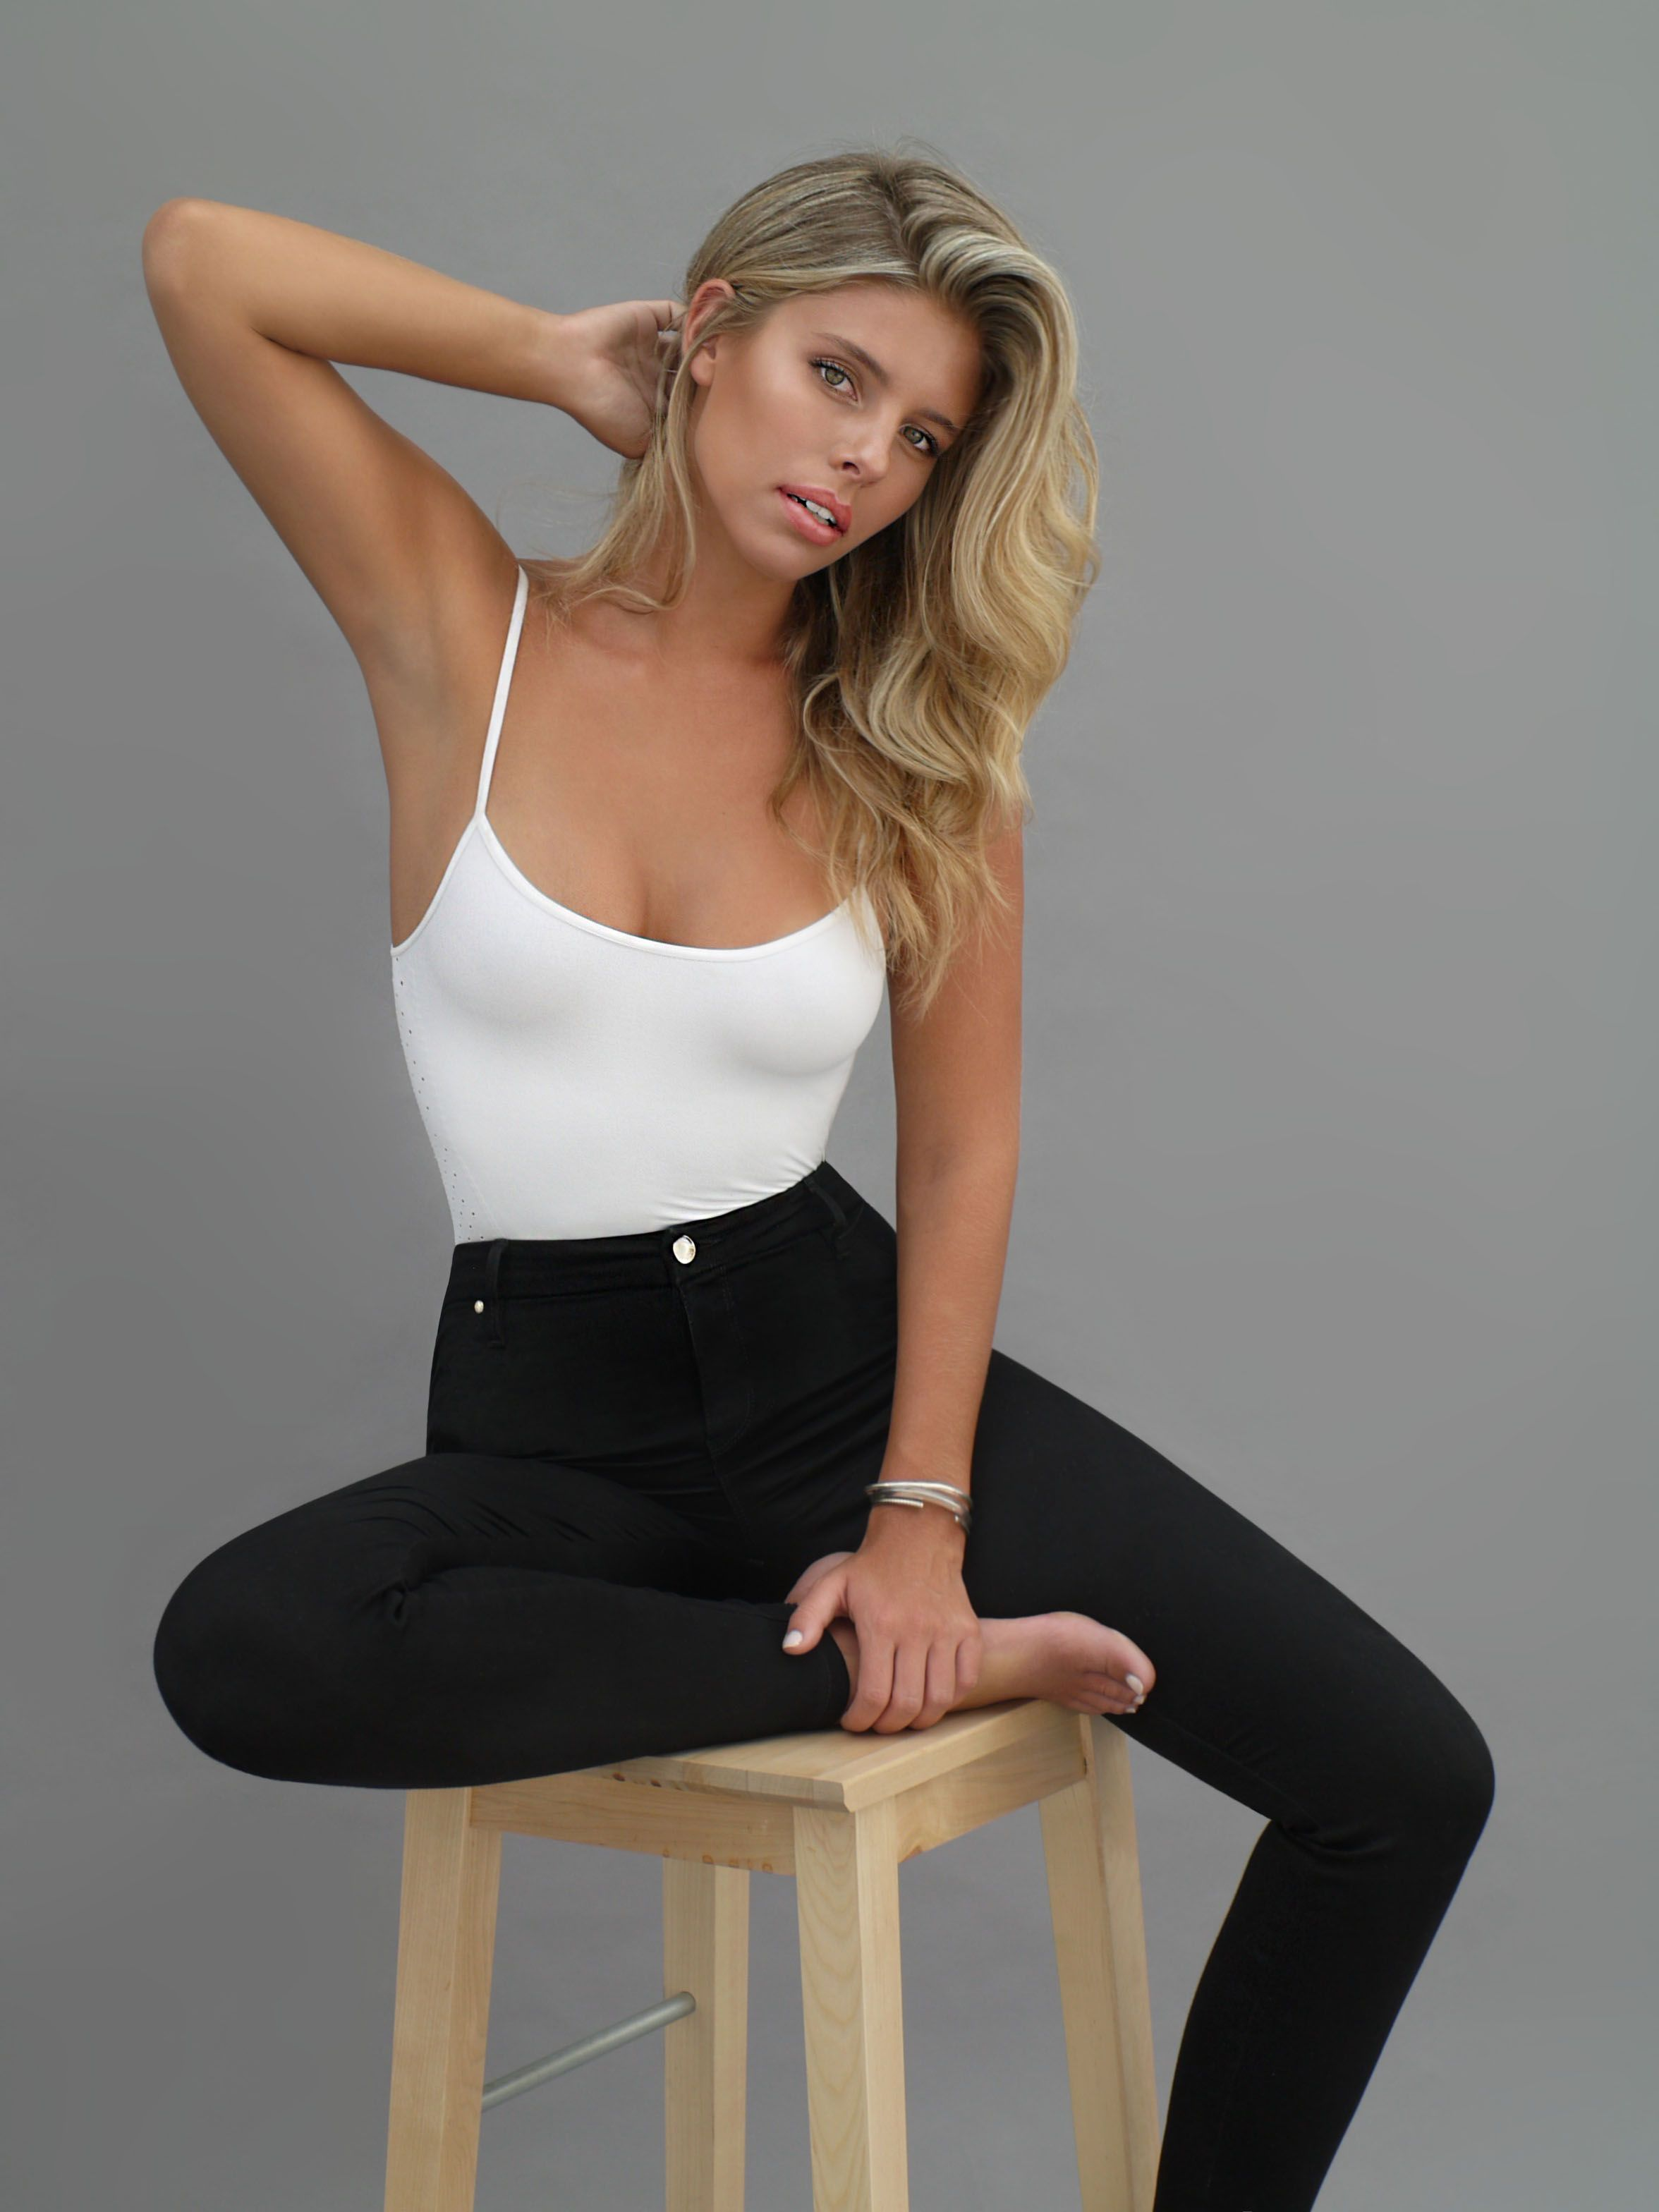 Pics Natasha Oakley nudes (49 foto and video), Sexy, Fappening, Twitter, braless 2015